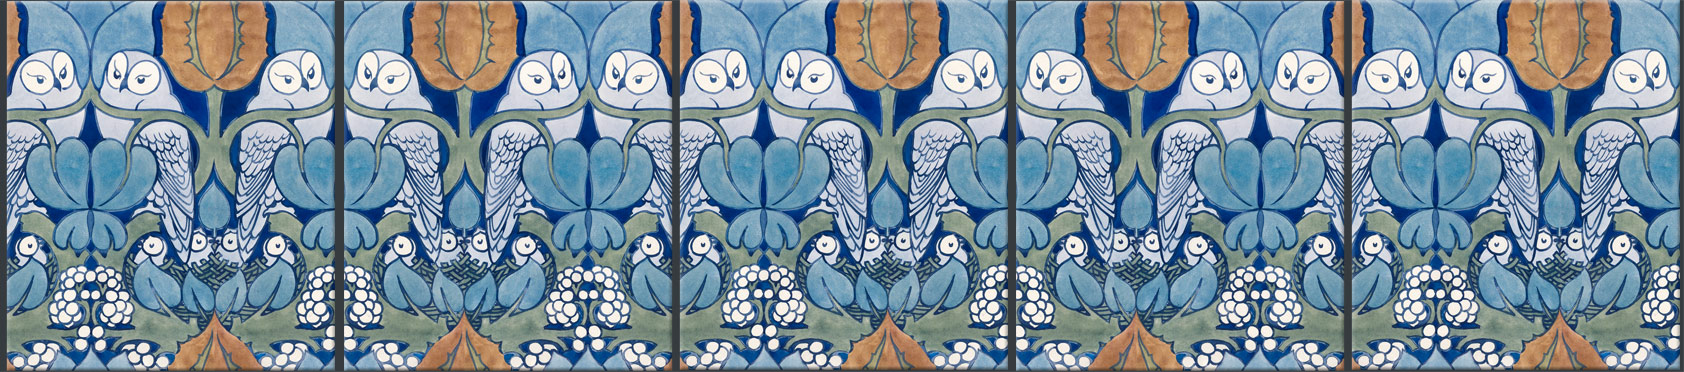 CFA Voysey tiles: Hoot border tiles